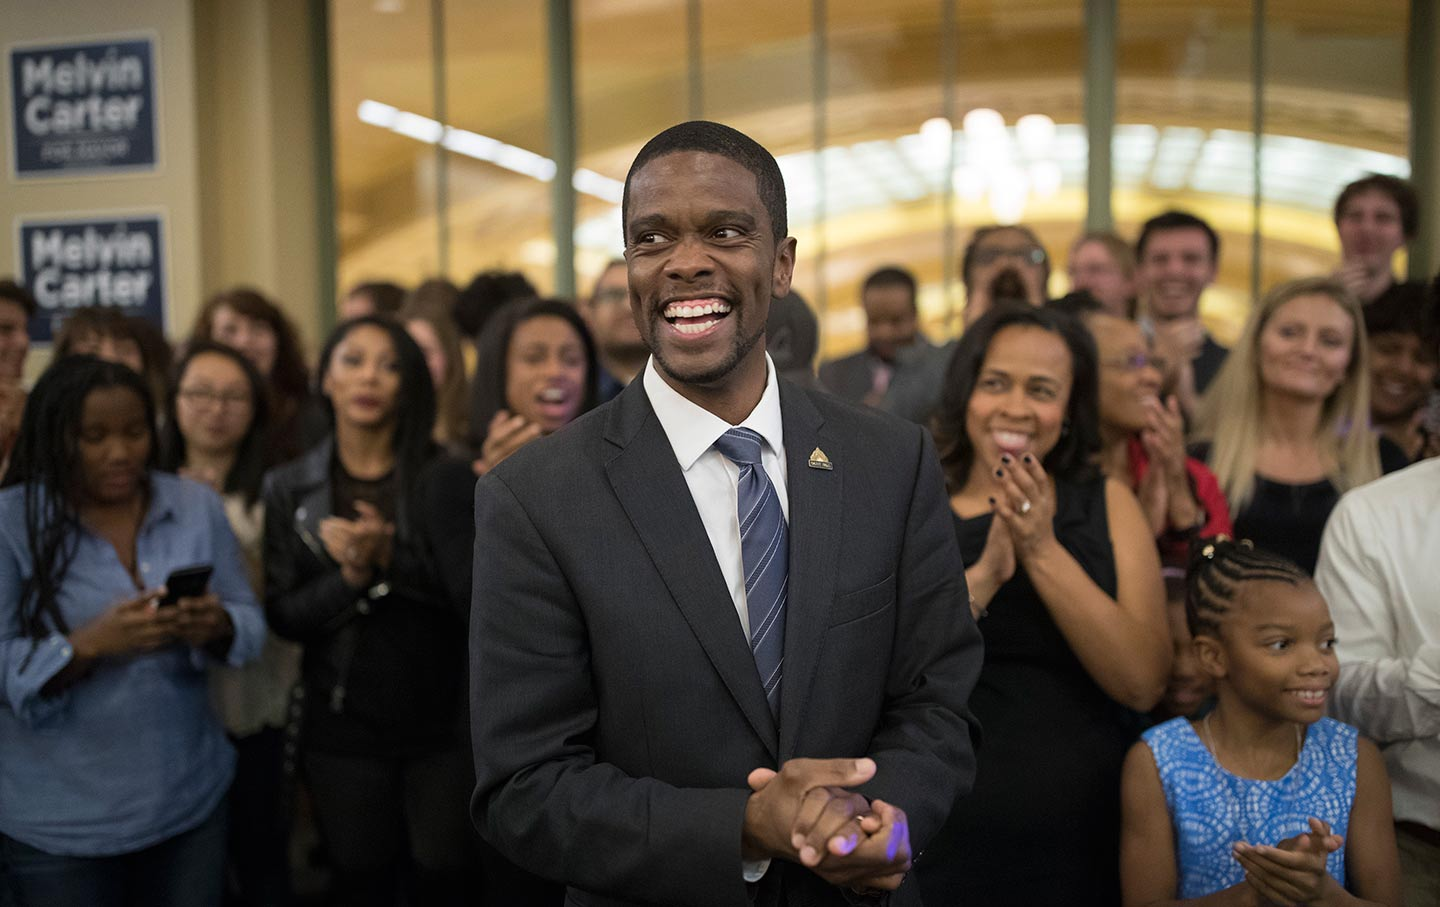 Melvin Carter Victory